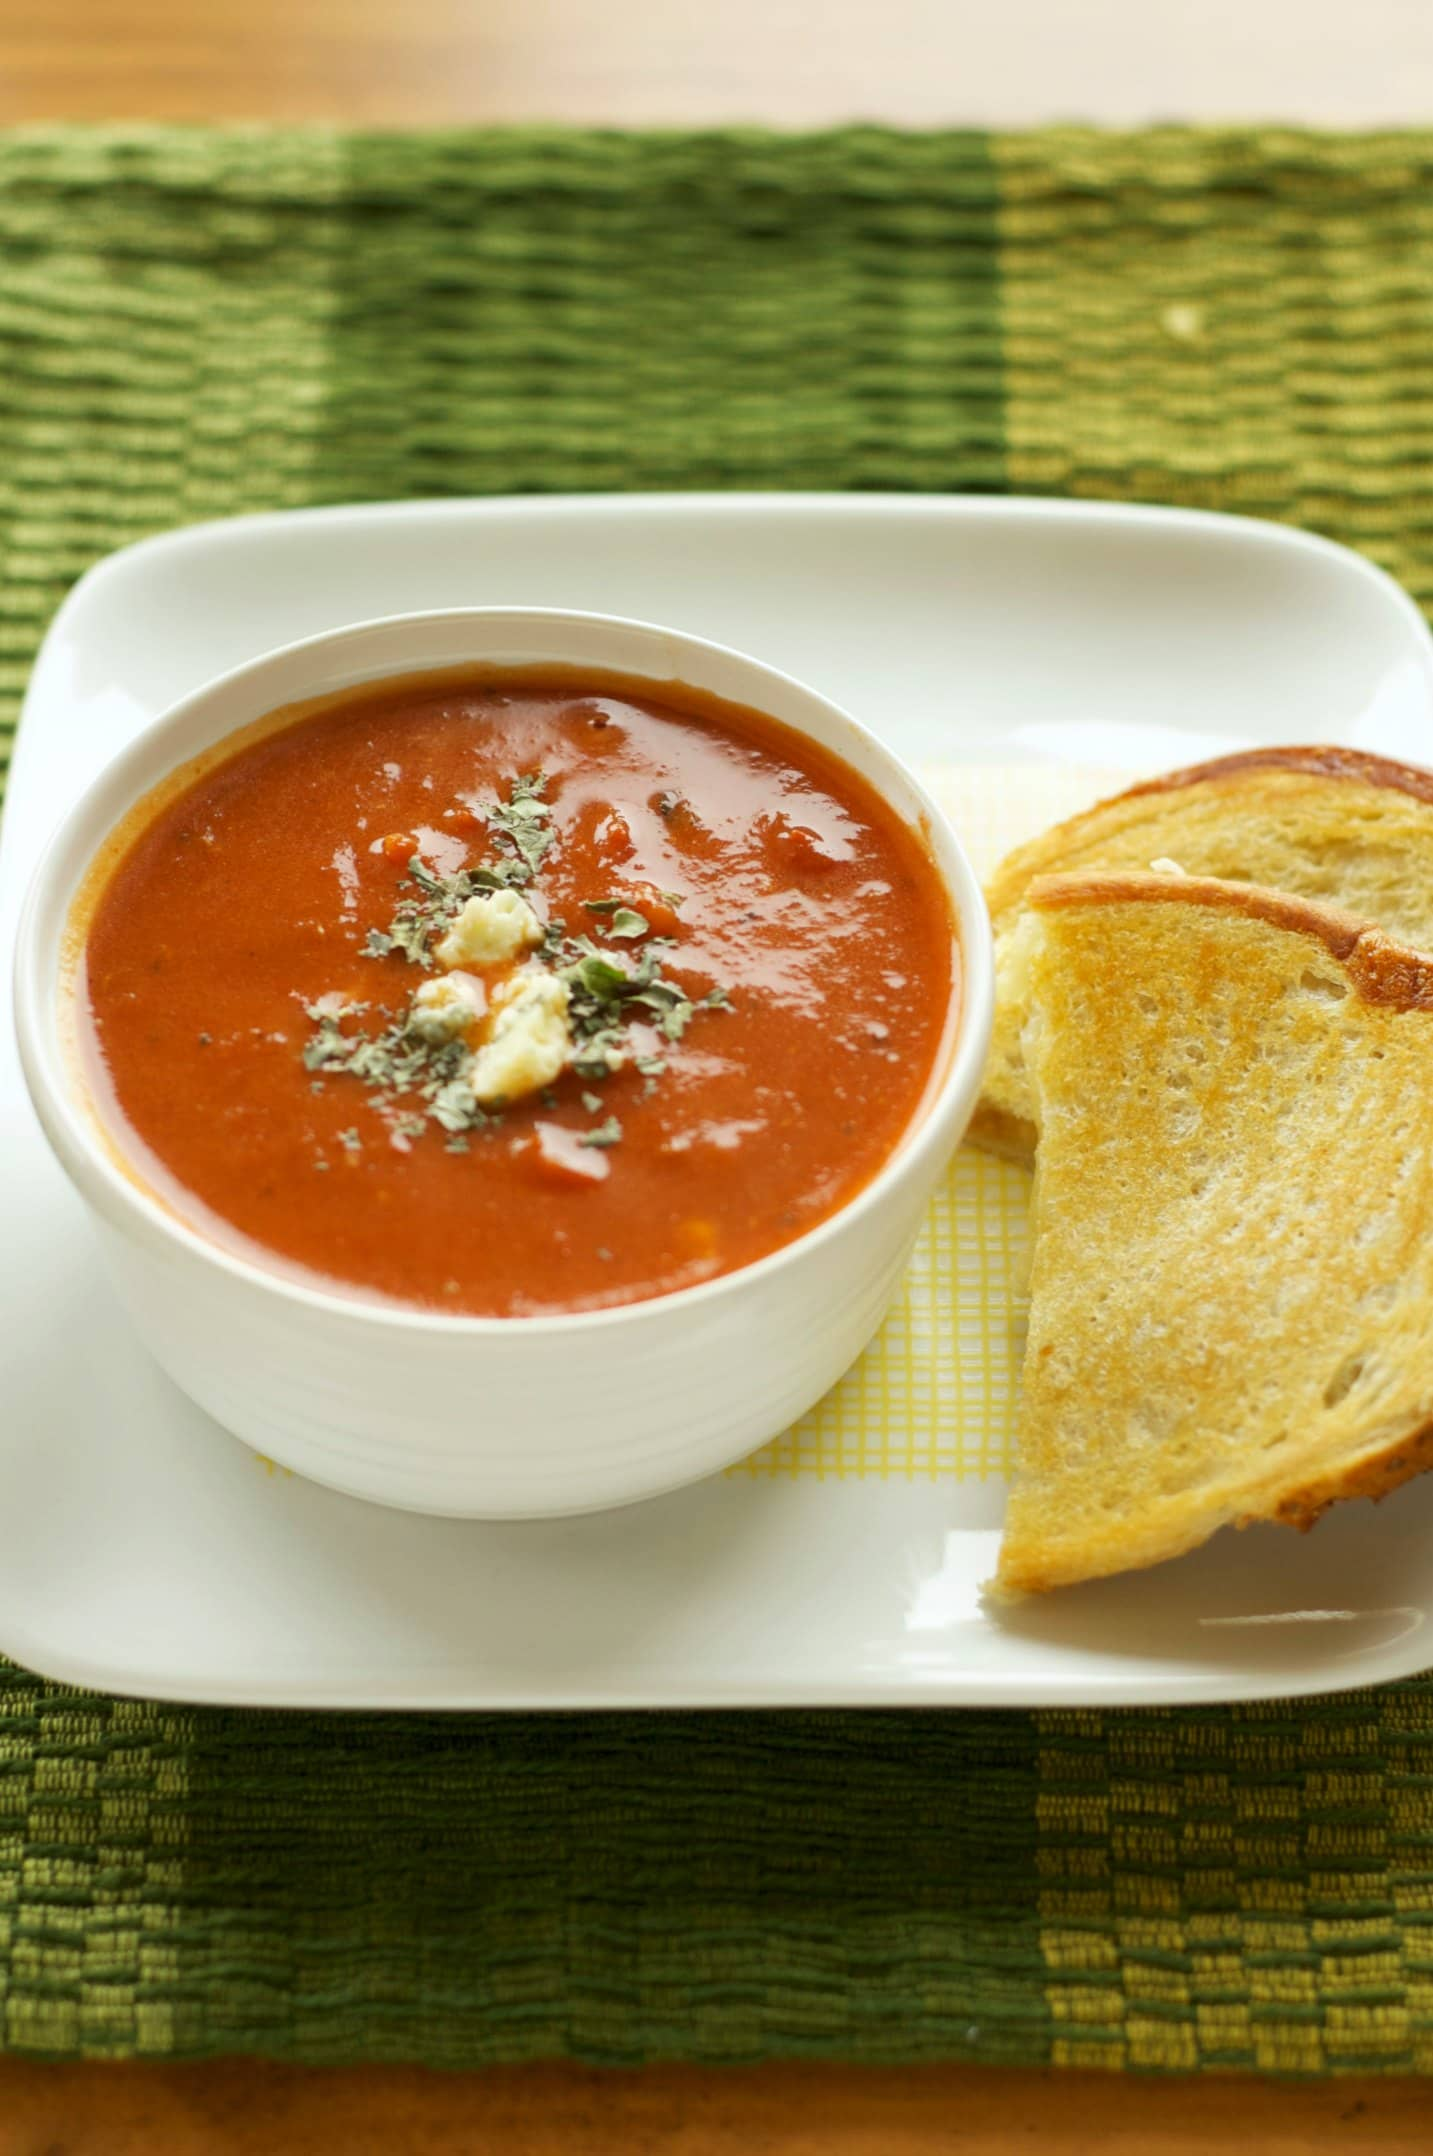 ... Fire Roasted Tomato and Creamy Gorgonzola Soup | Crockpot Gourmet